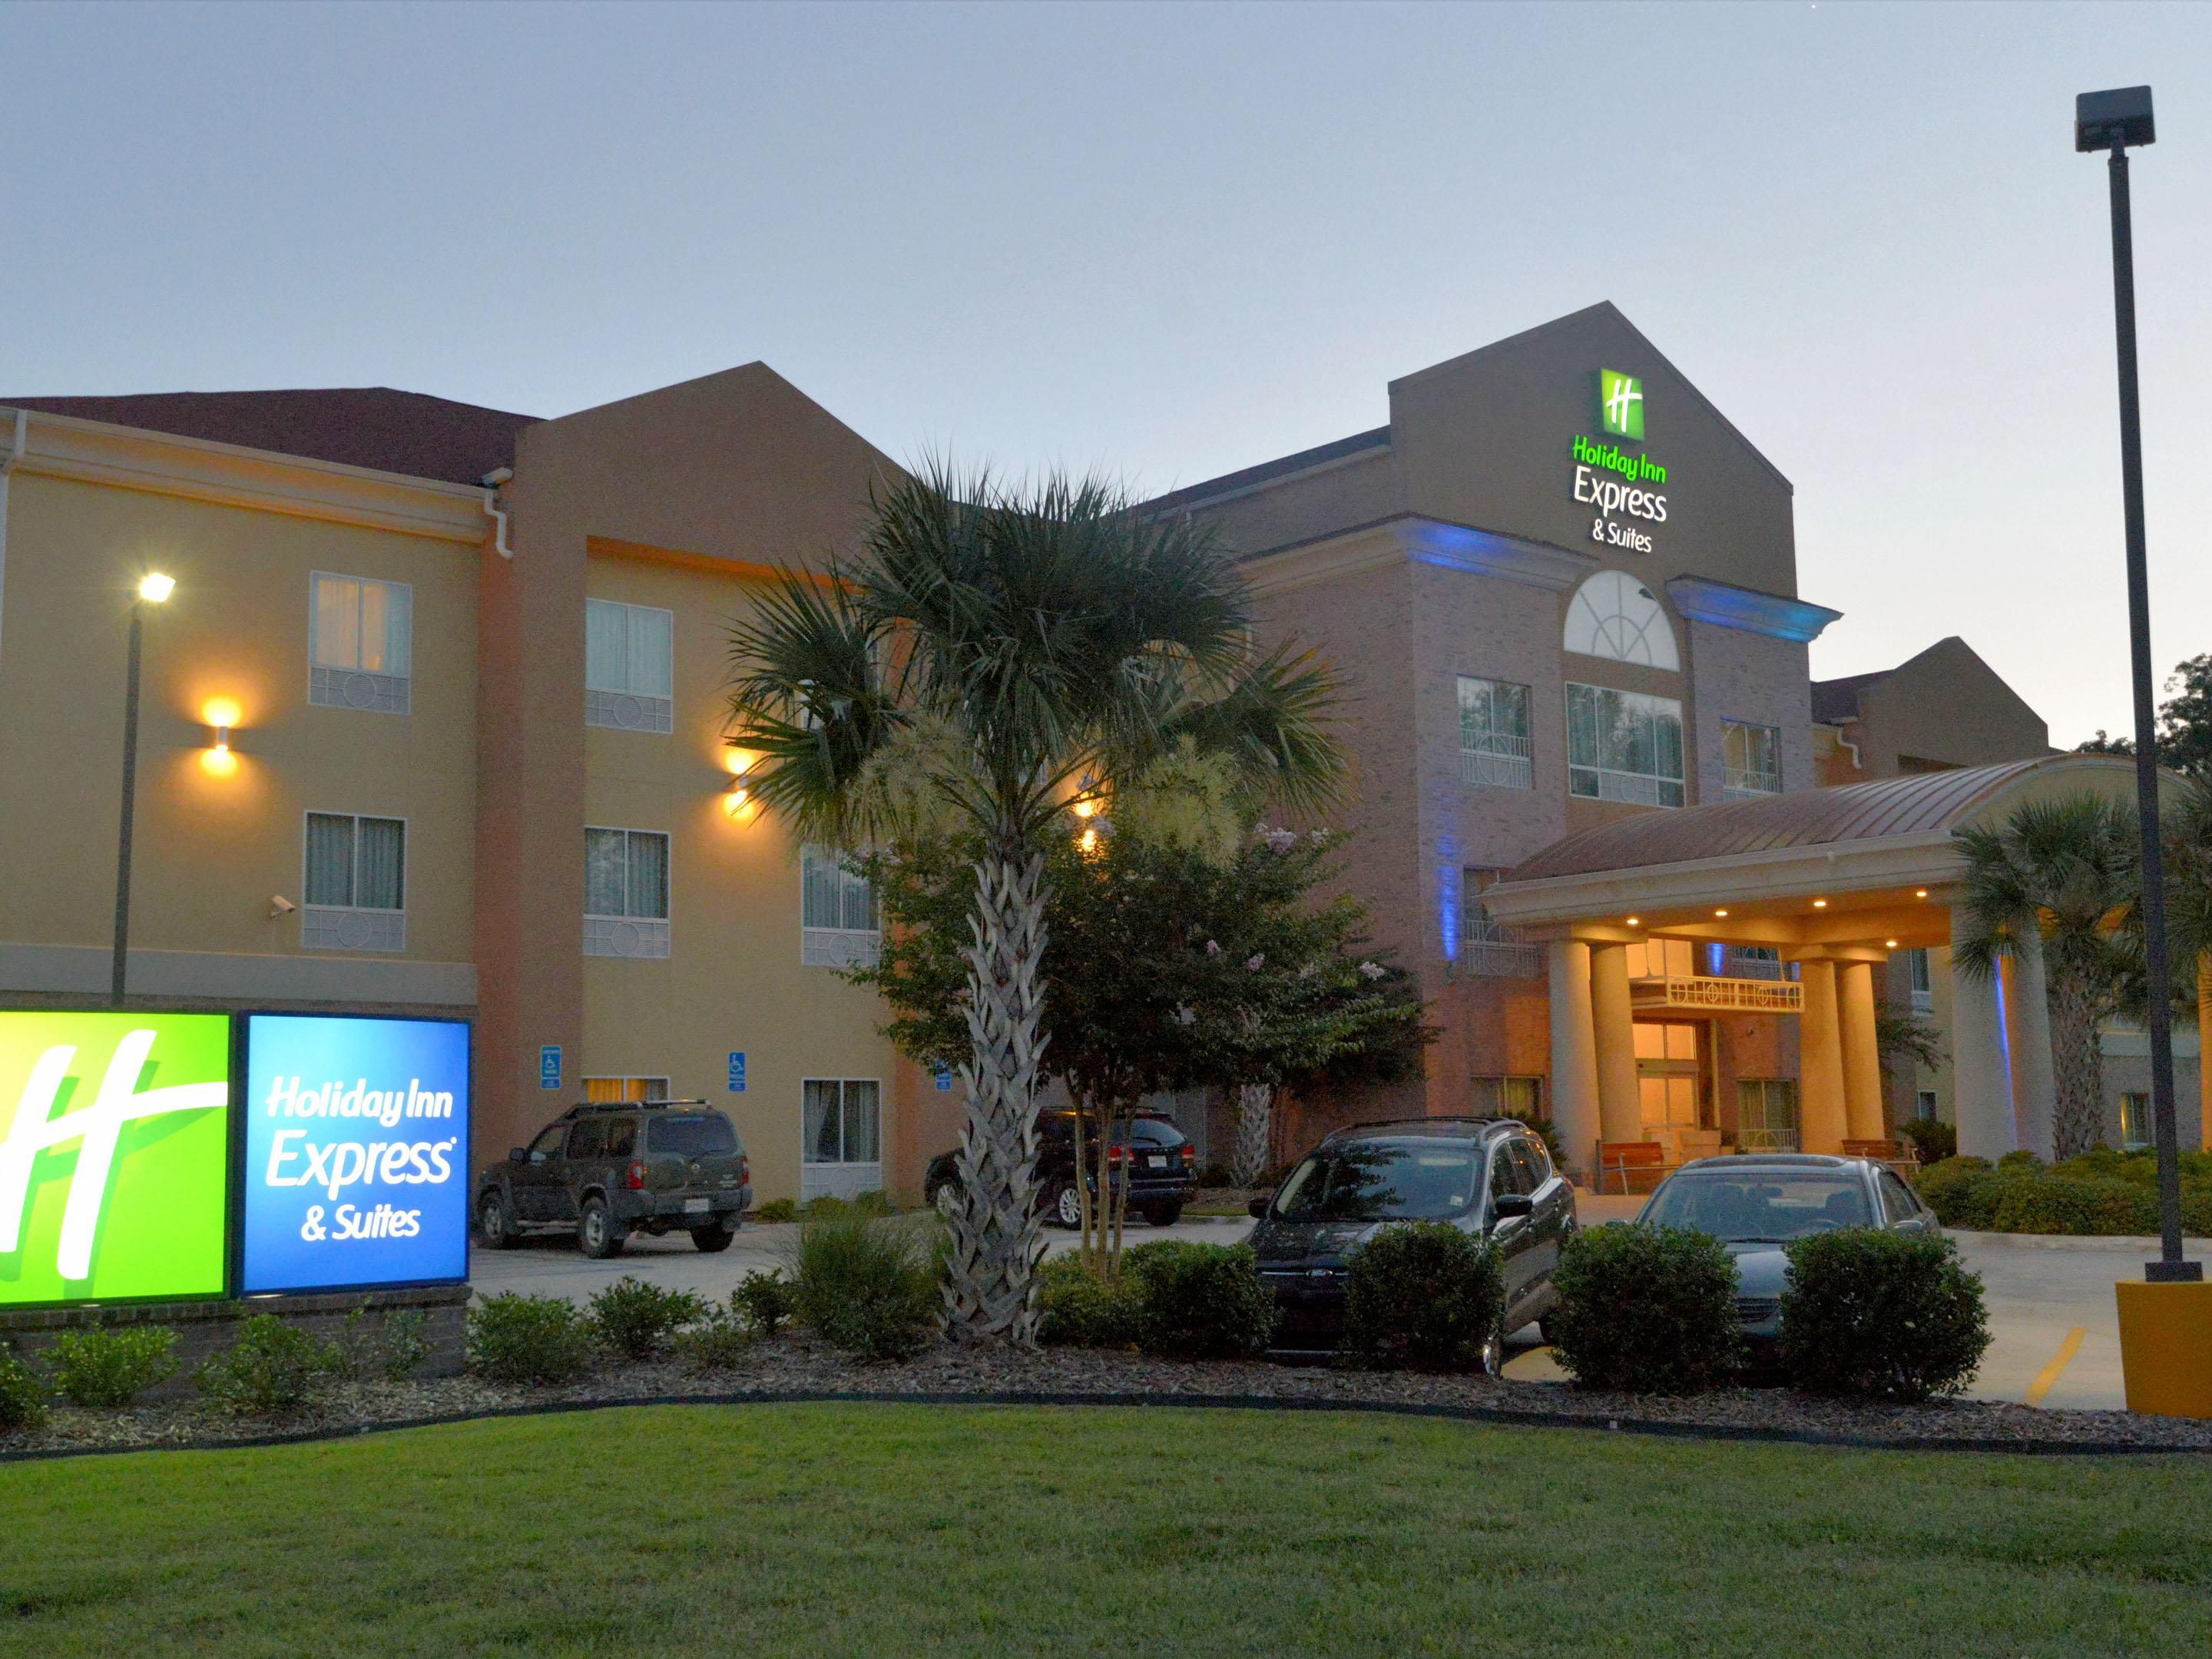 Holiday Inn Express Zachary Affordable Hotels By IHG